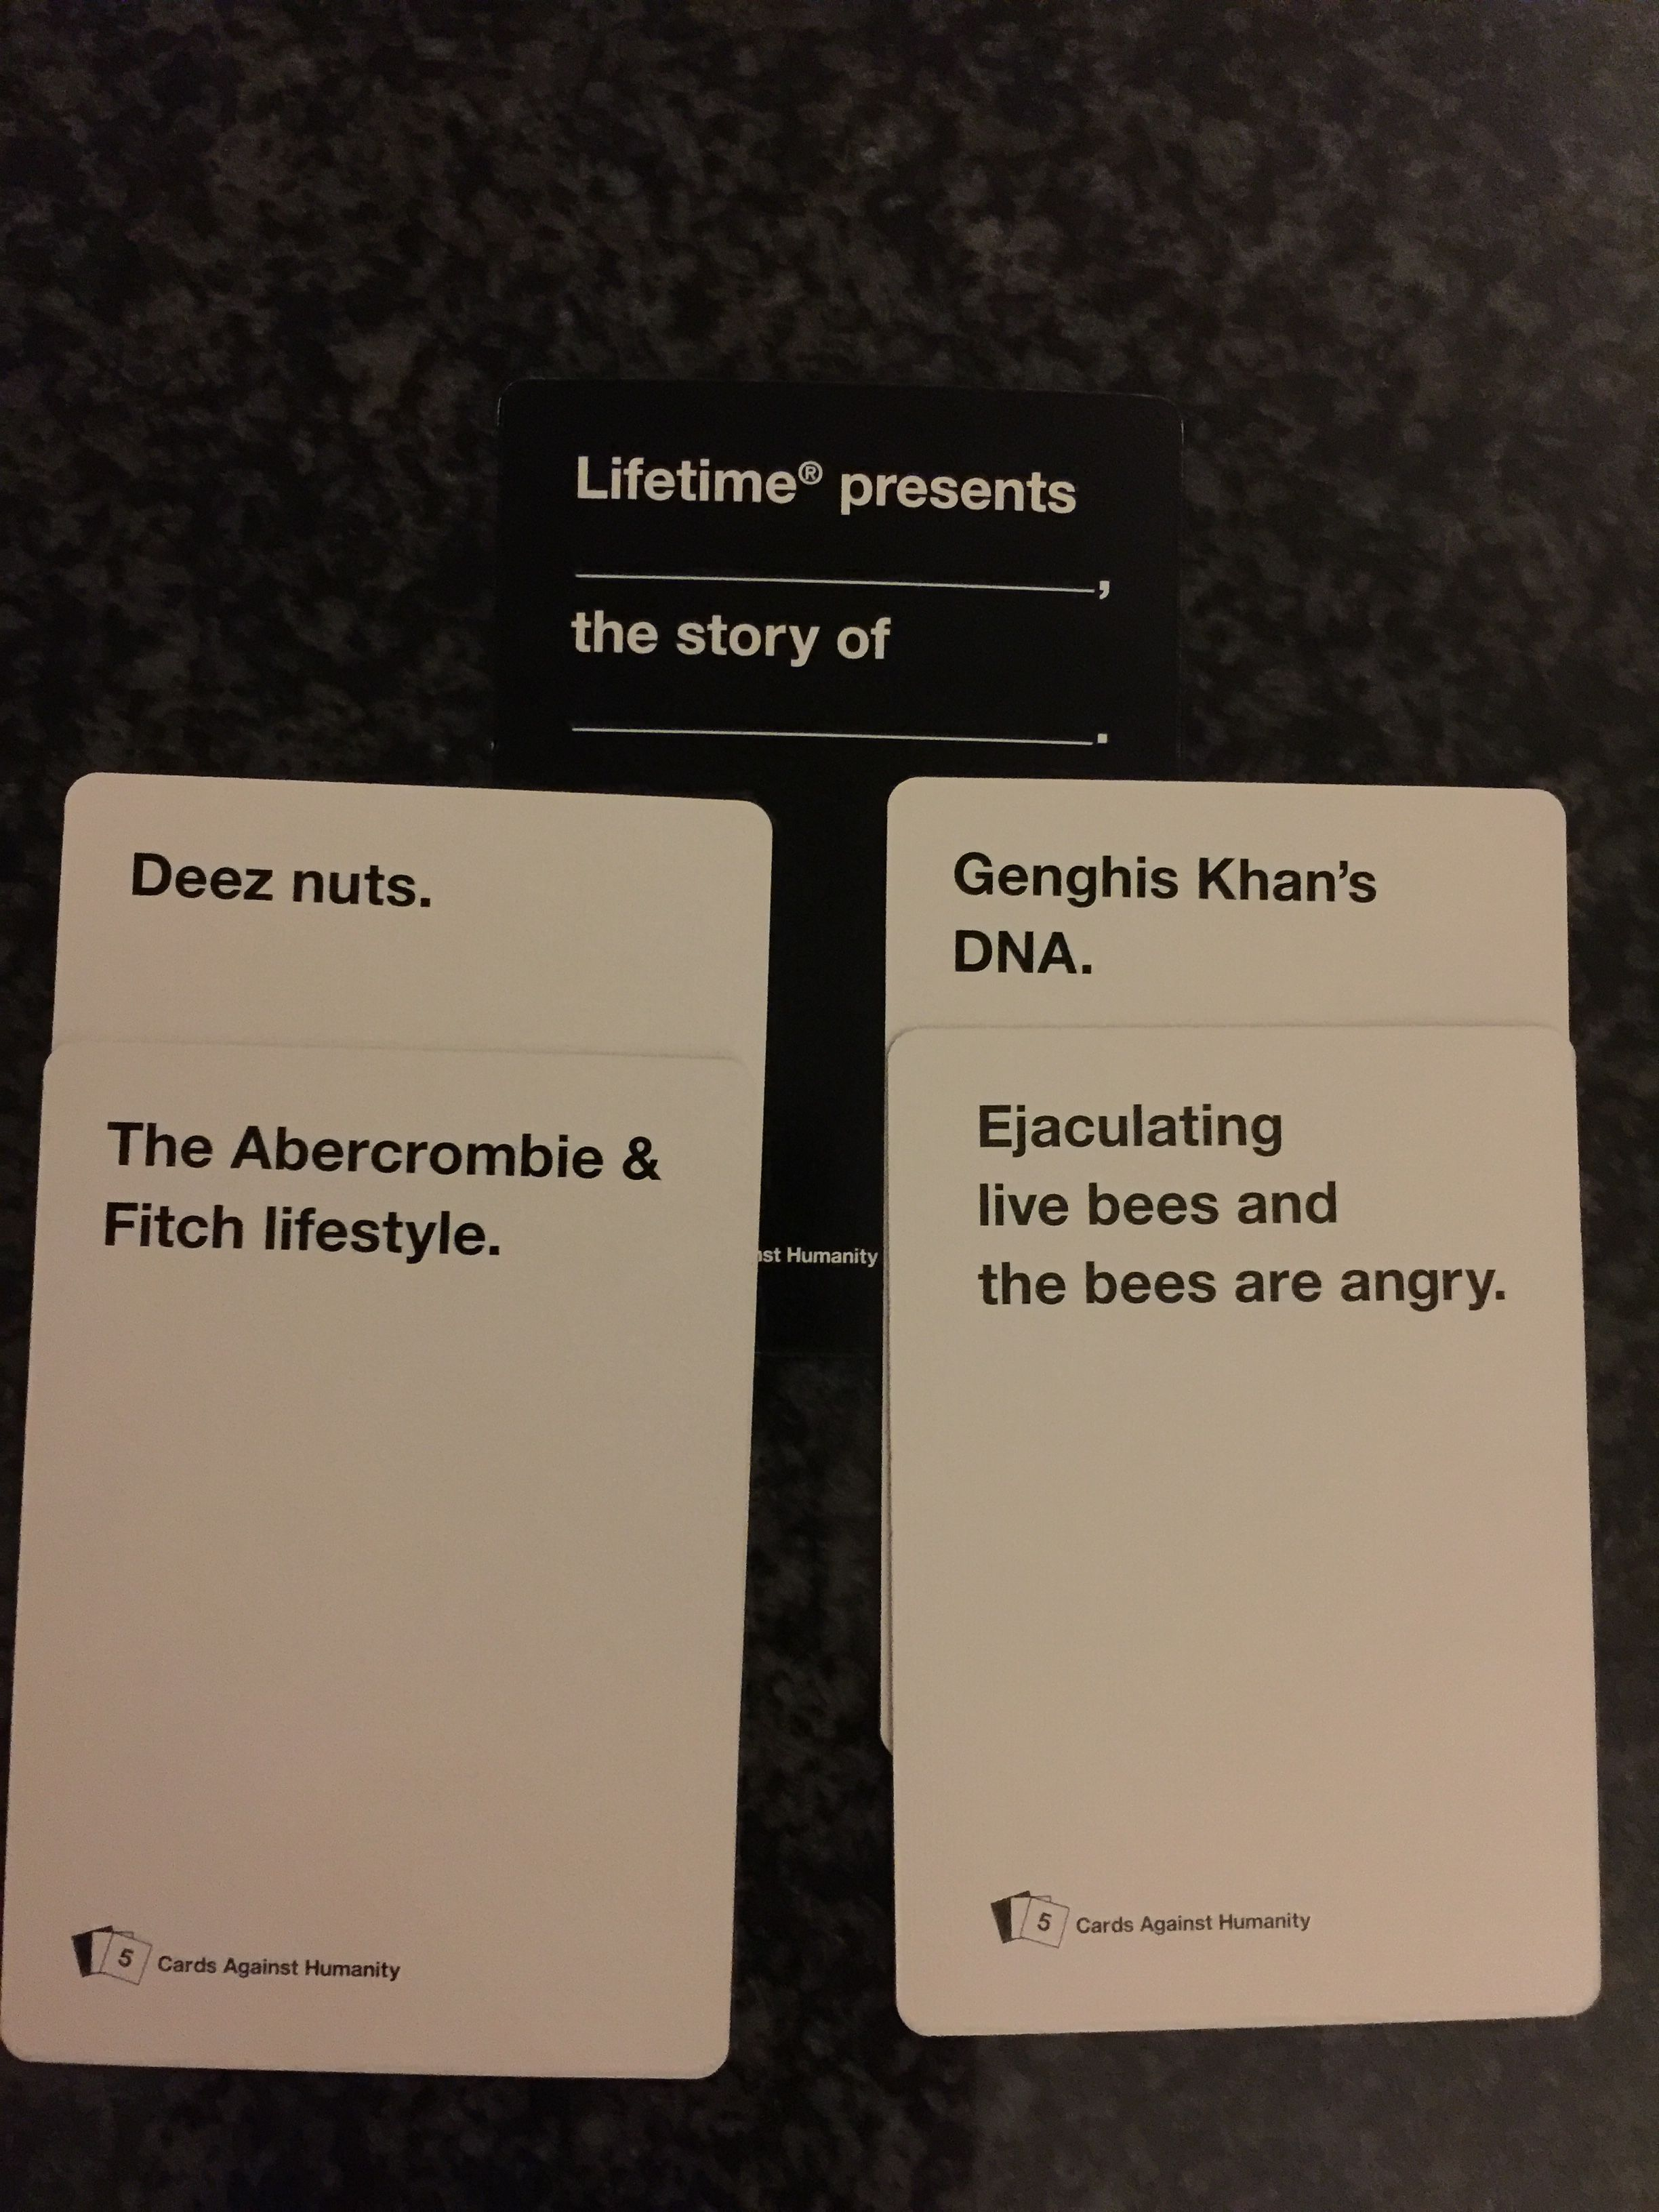 Pin By Amanda Magnano On Cards Against Humanity Cards Against Humanity Cards Cards Against Humanity Twisted Humor